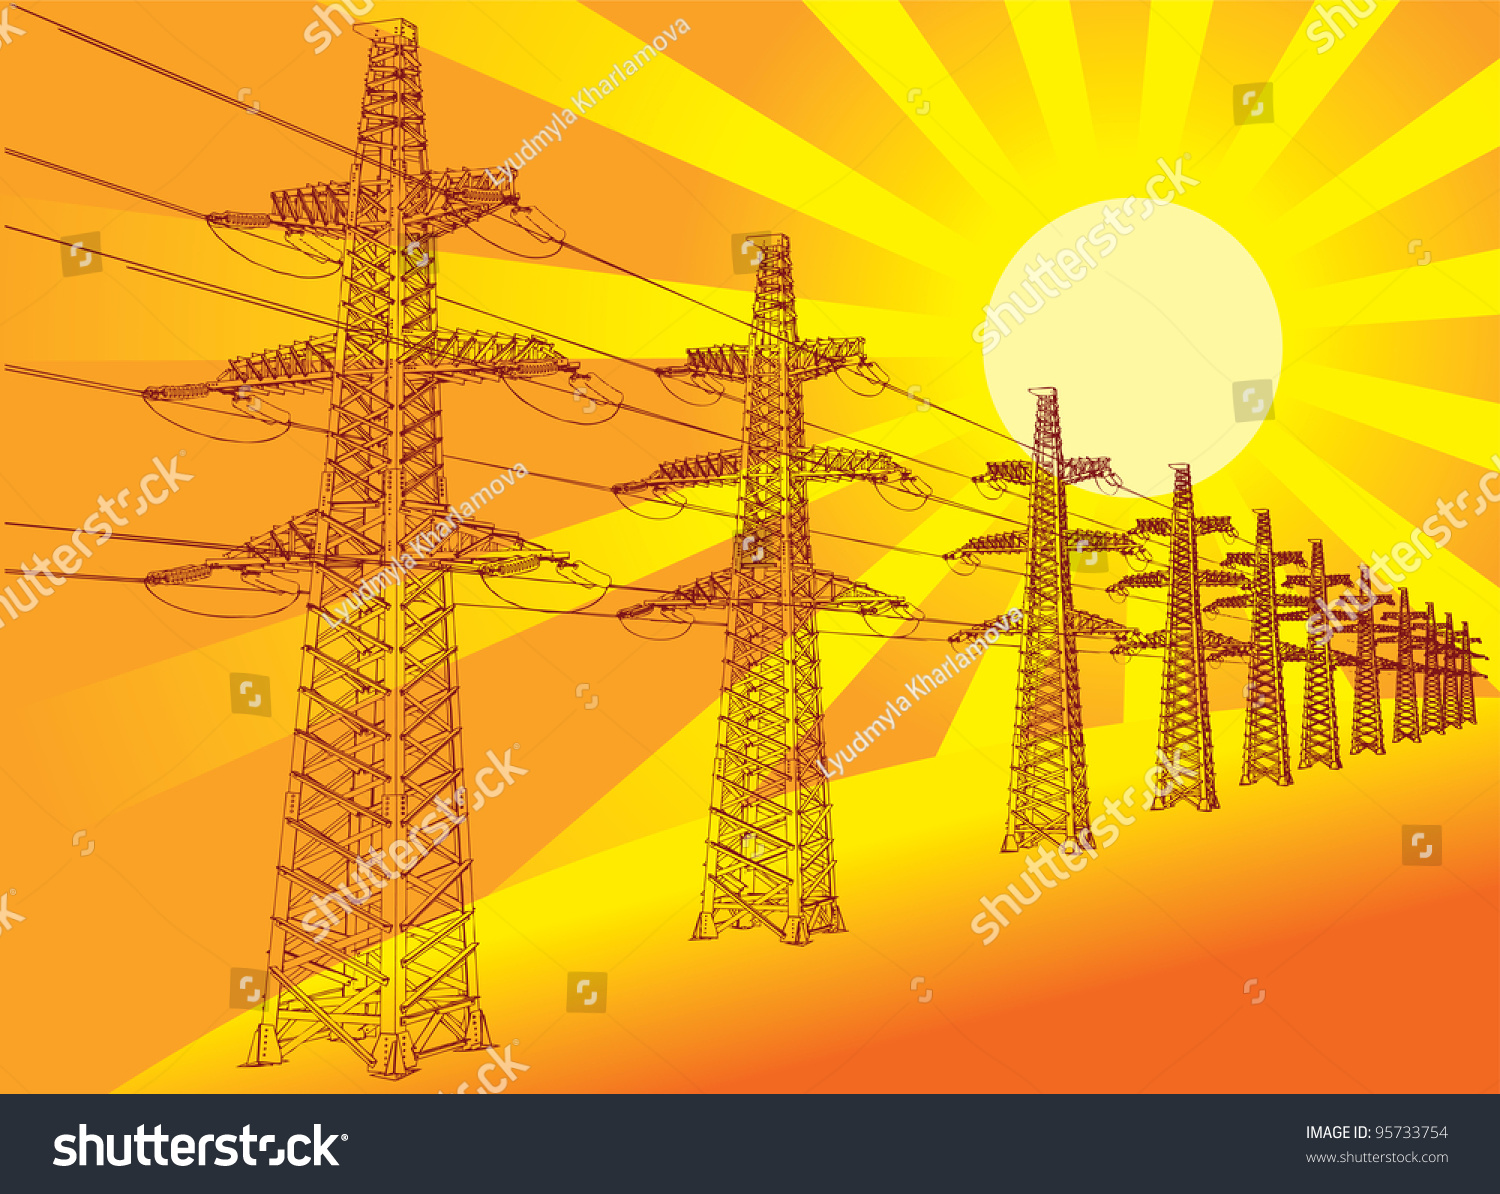 Line Drawing Setting Sun : Power transmission line against setting sun stock vector